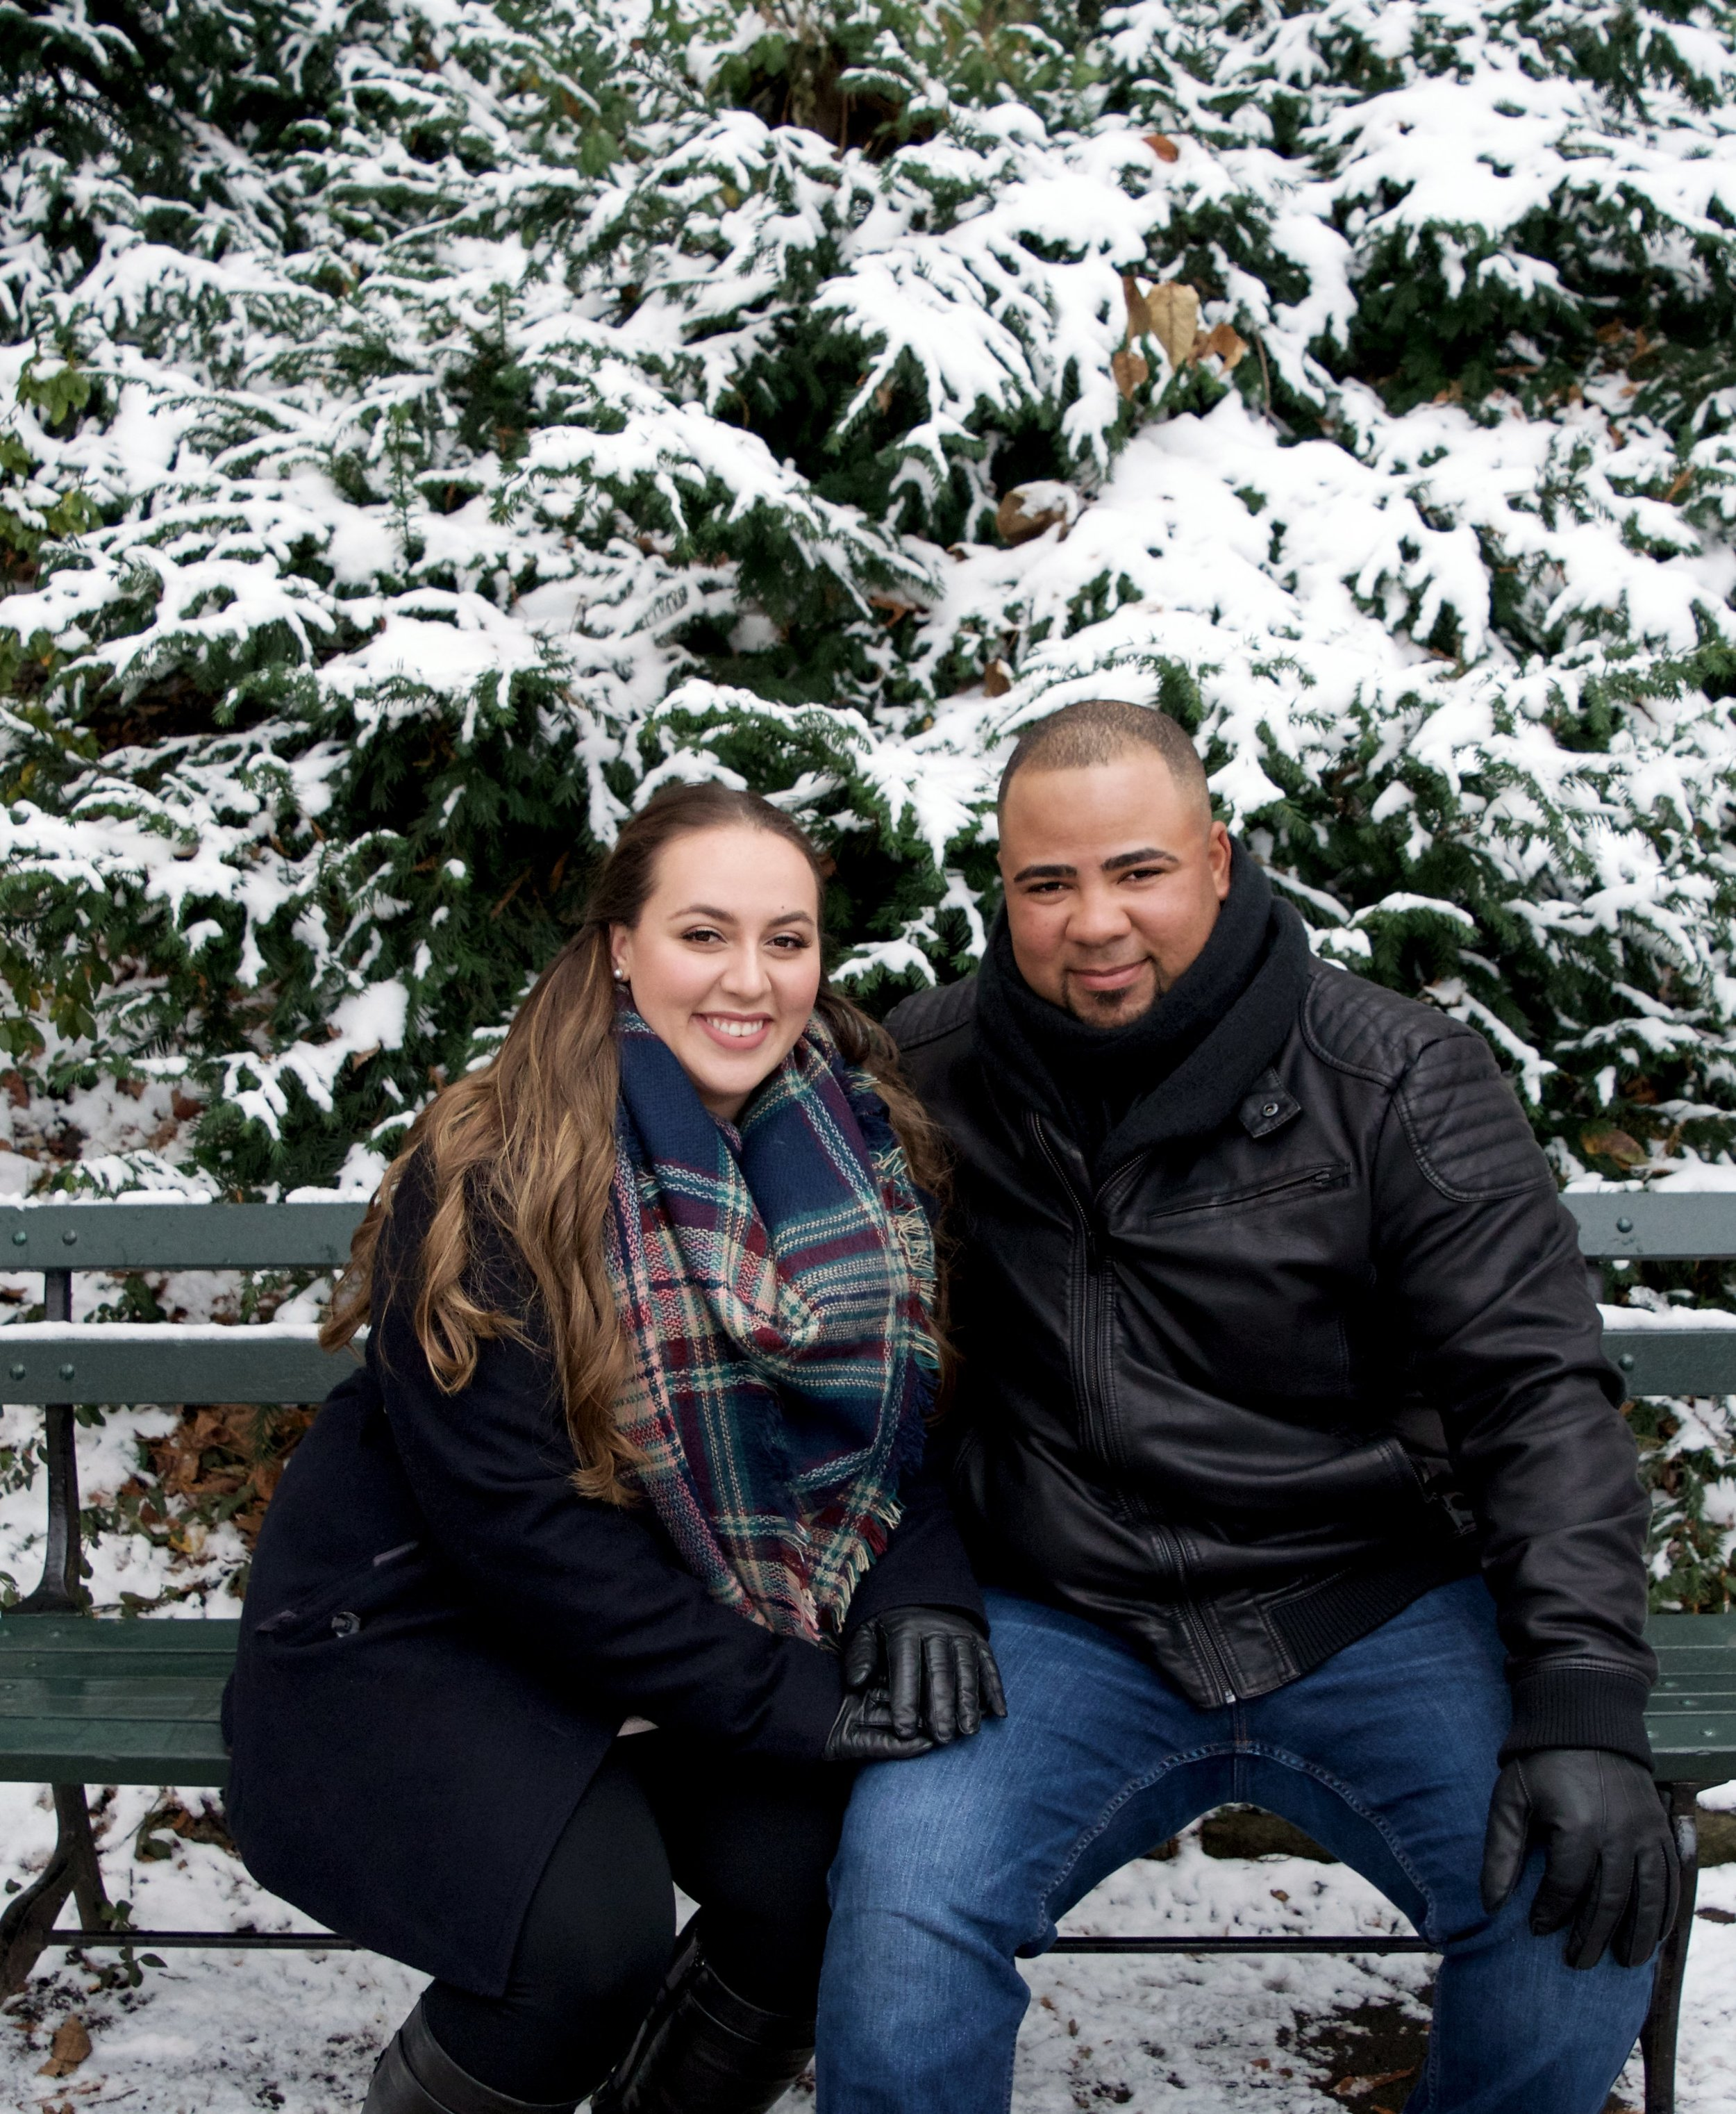 central park couples engagement photography nyc photographer